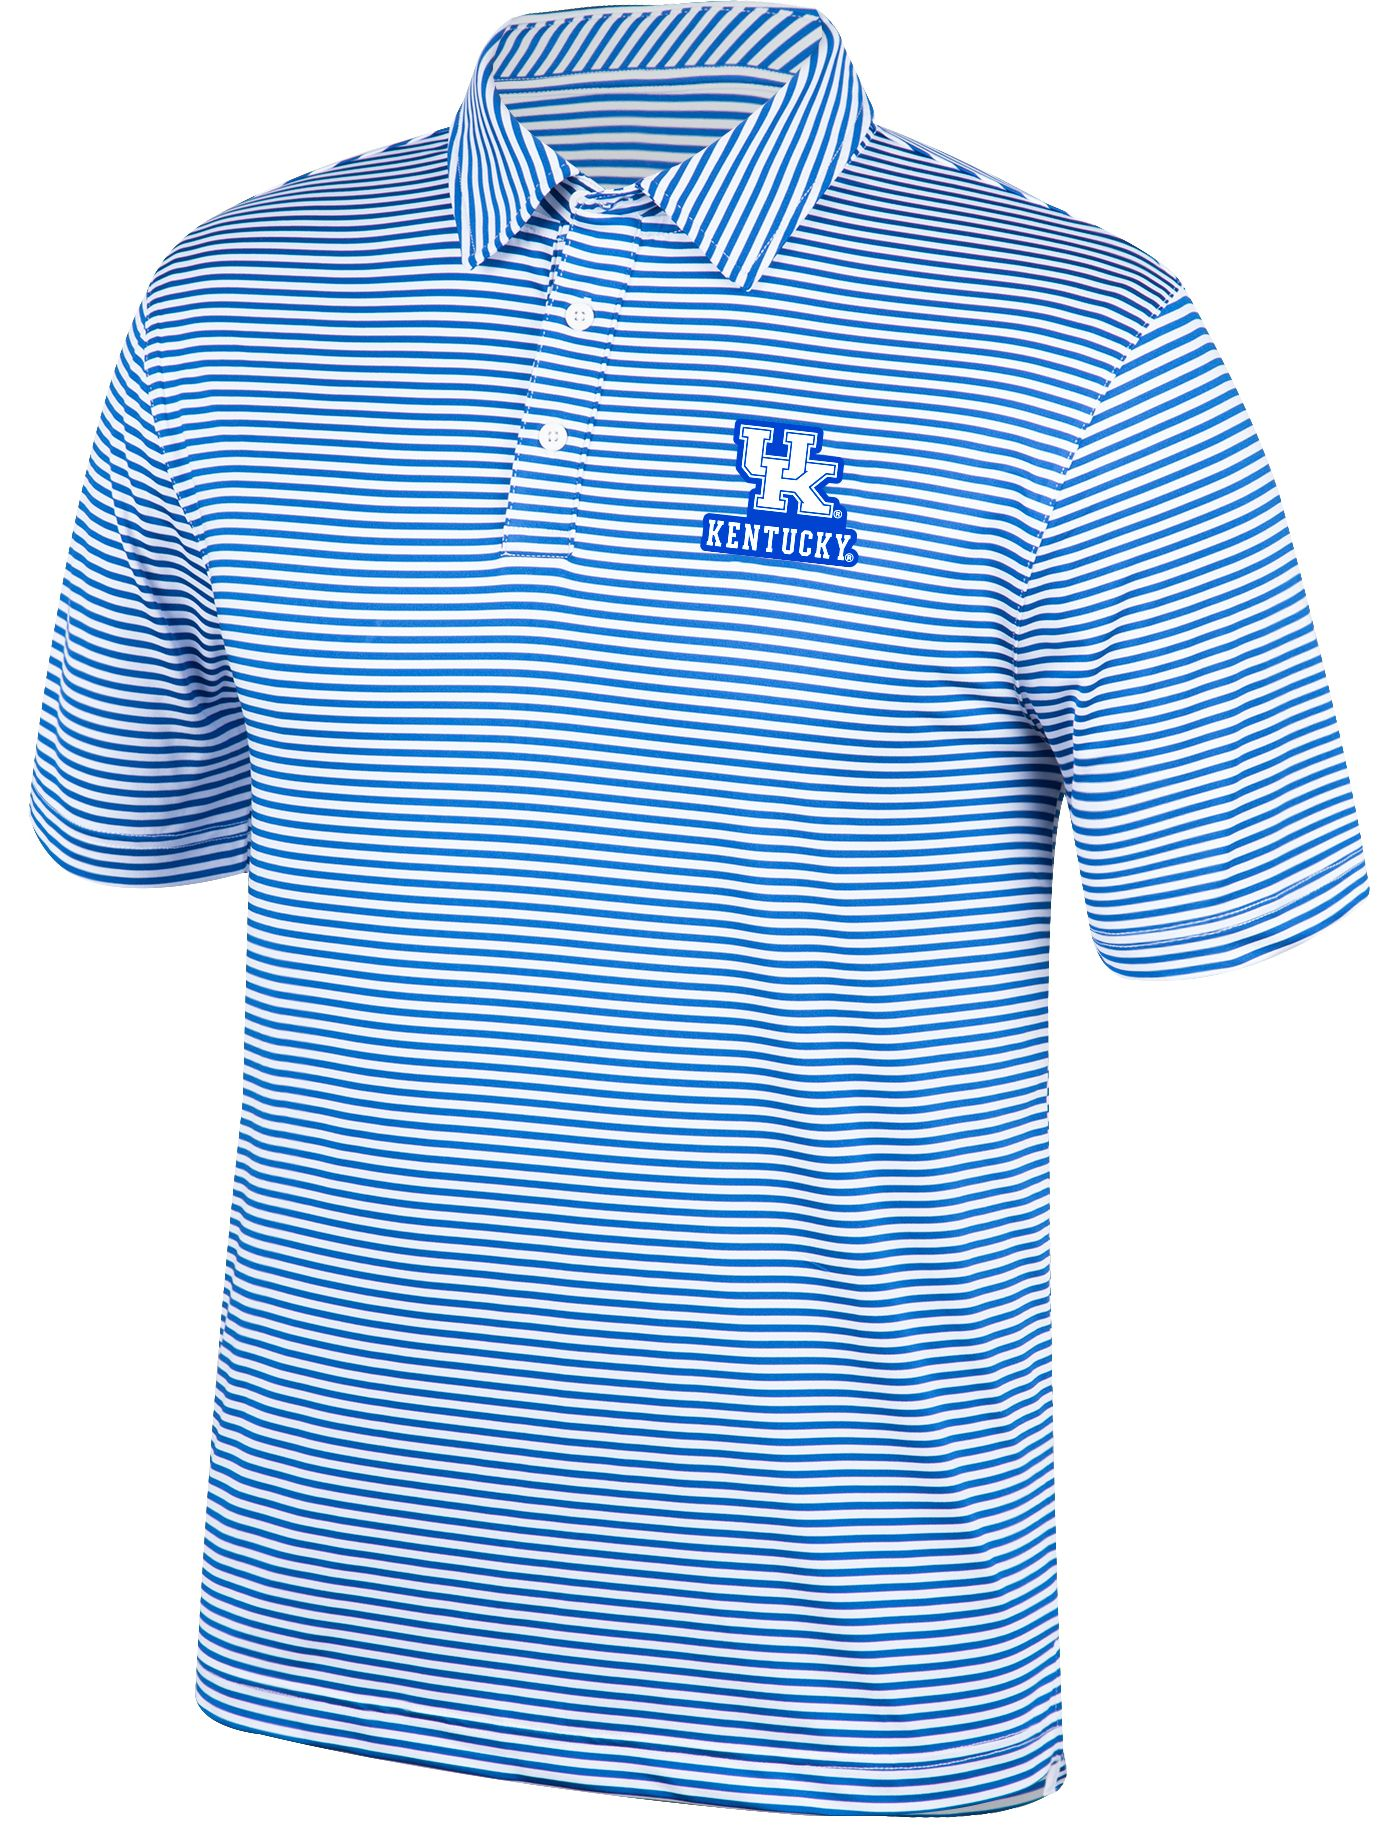 Top of the World Men's Kentucky Wildcats Blue/White Bunker Polo